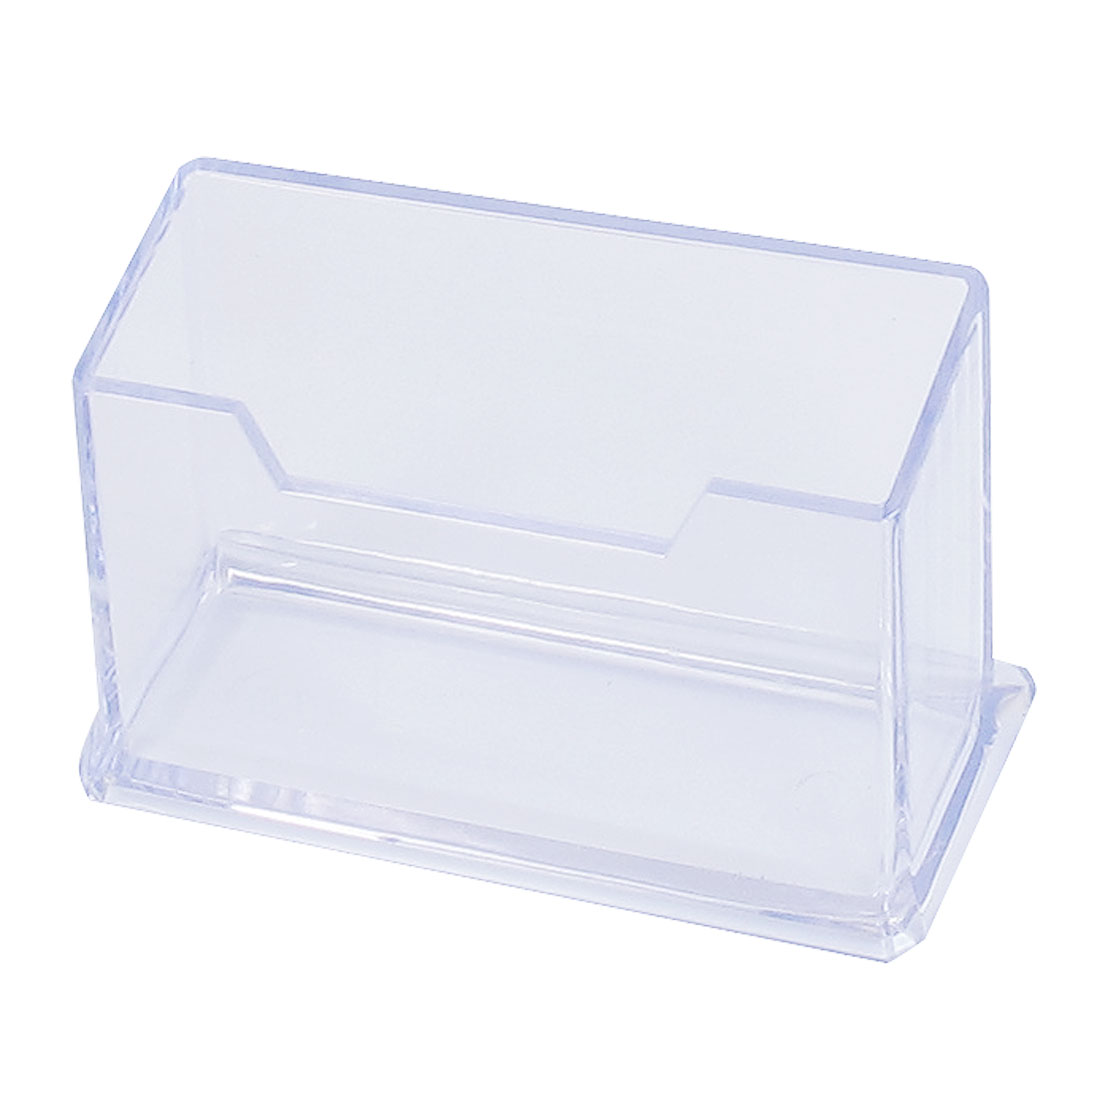 Office Clear Credit Business ID Name Card Protective Case Holder